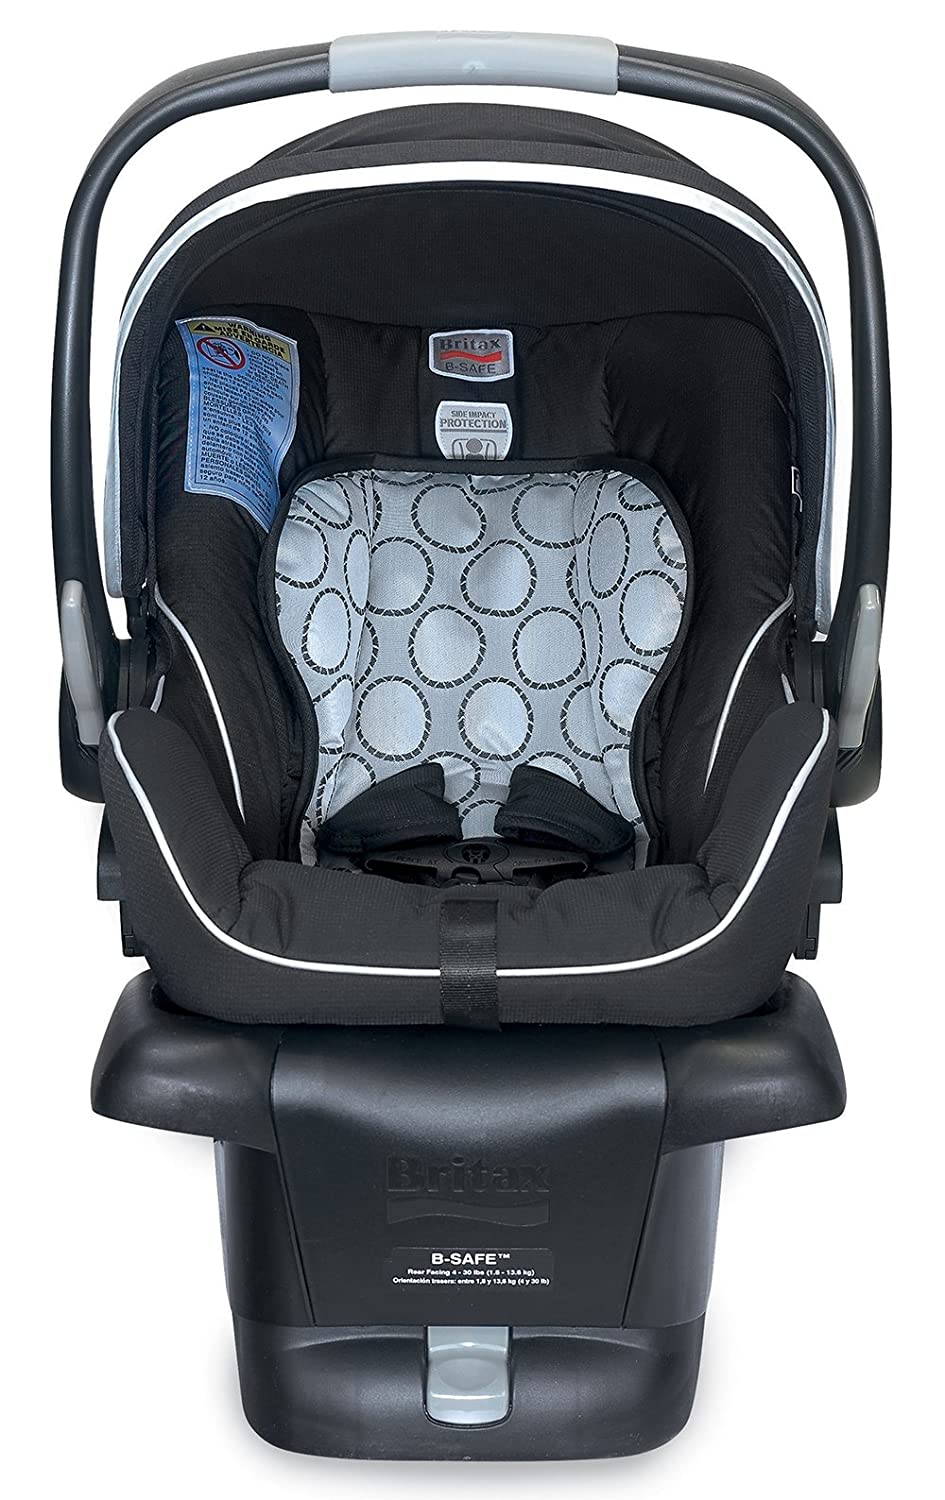 Amazon.com : Britax B-Safe Infant Car Seat, Black (Prior Model ...